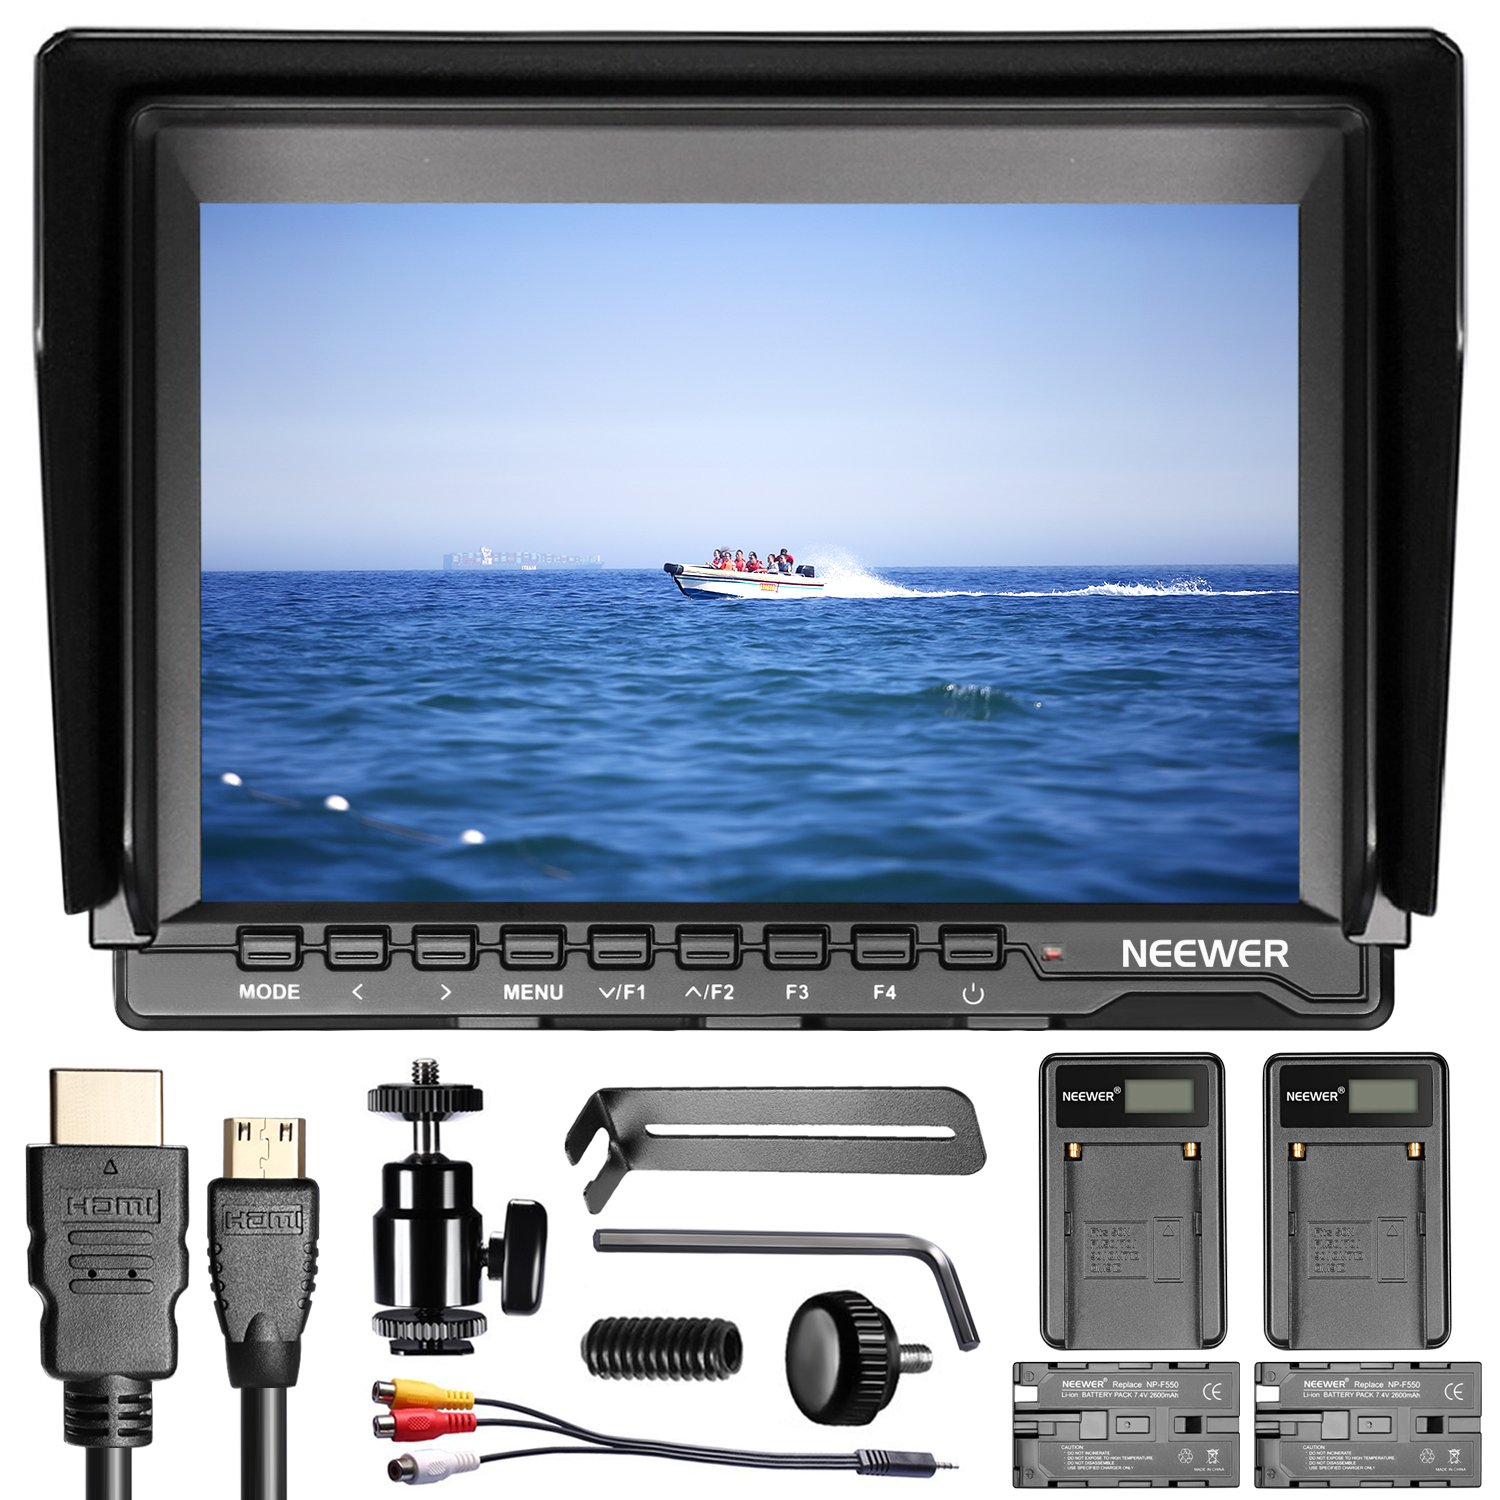 Neewer NW74K 7-Inch Ultra HD 4K 1280x800 IPS Screen Camera Field Monitor for Sony, Canon, Nikon, Olympus, Pentax, Panasonic Cameras (Power Supply and Battery Not Included) 10087212